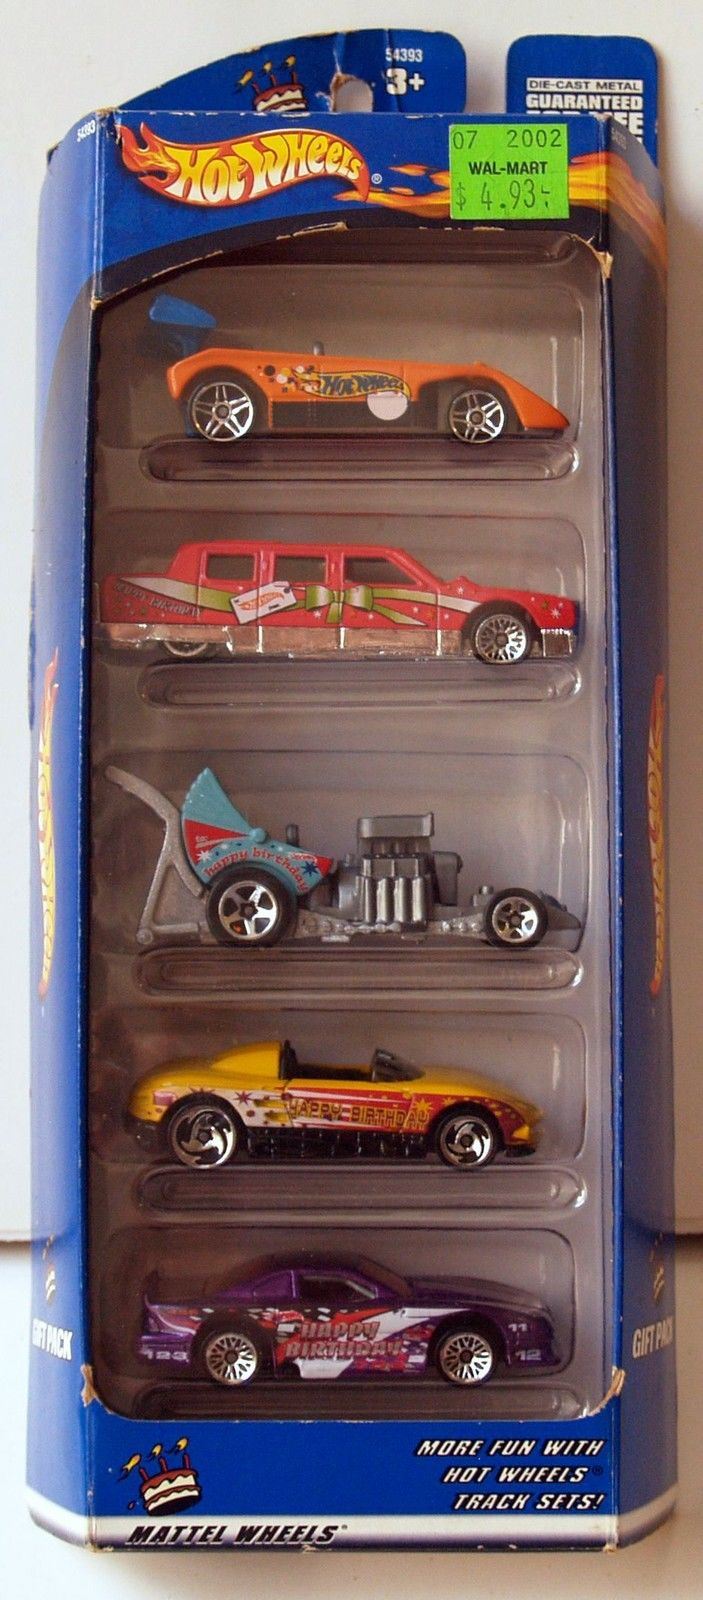 2000 HOT WHEELS - HAPPY BIRTHDAY GIFT PACK - 5 CAR PACK